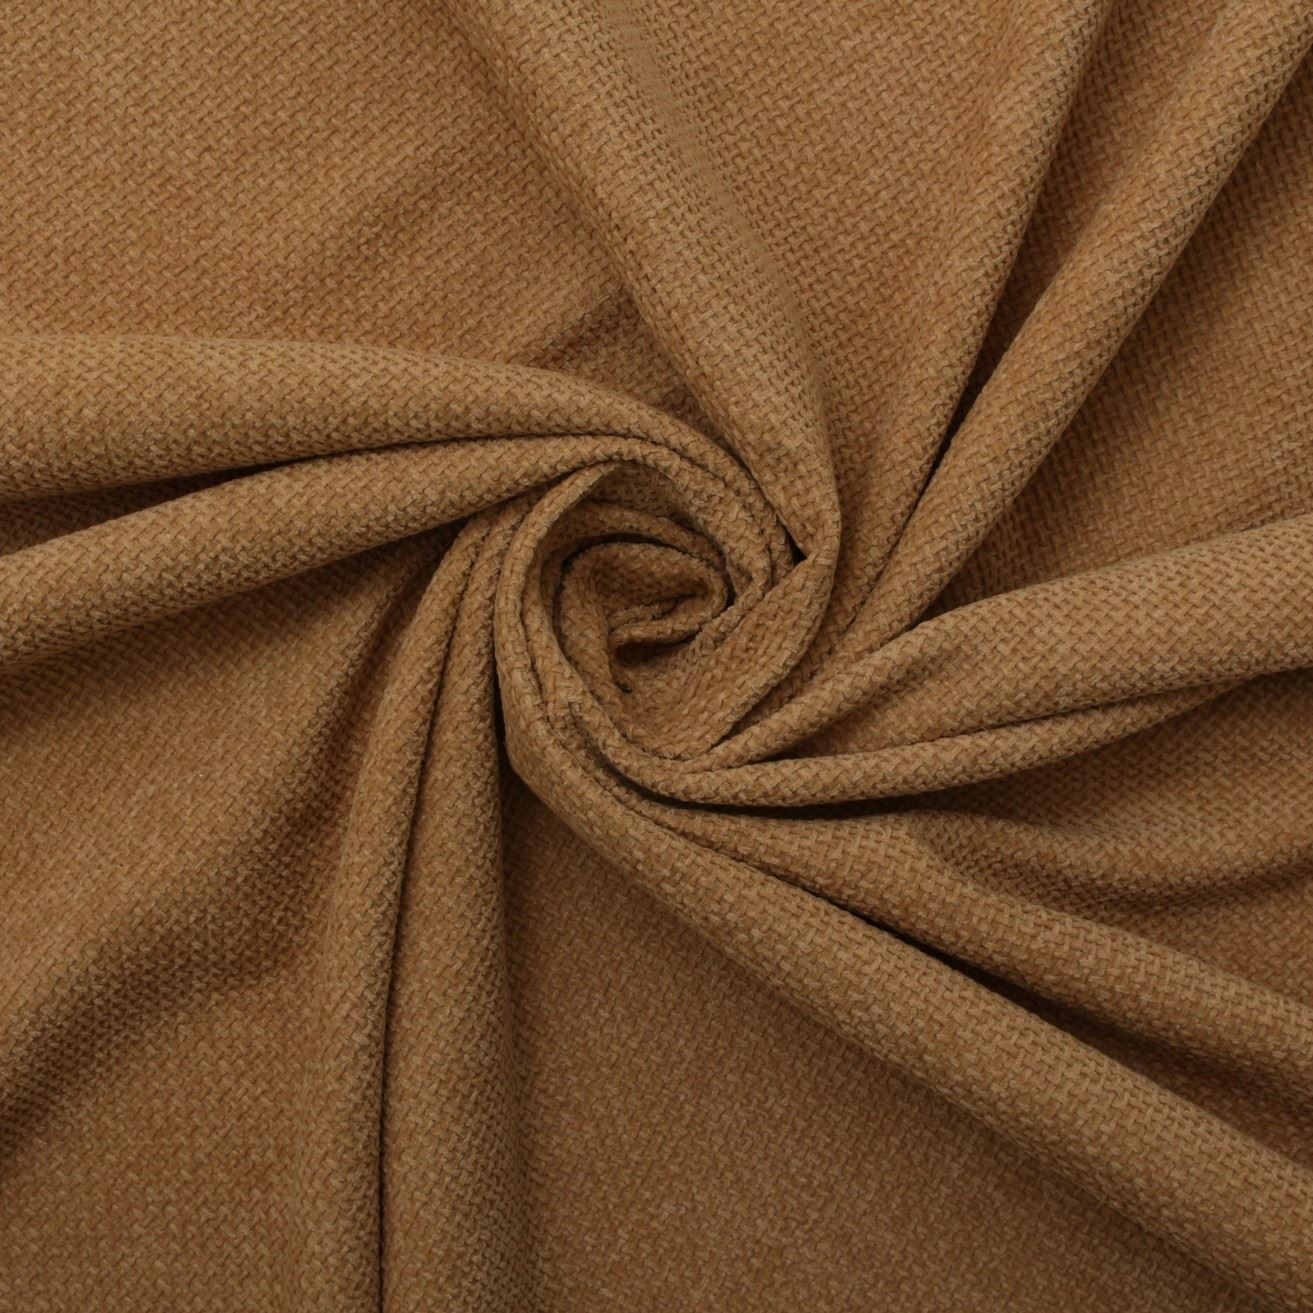 CLASSIC-BASKETWEAVE-LOOSE-COVERS-UPHOLSTERY-INTERIORS-CURTAIN-SOFT-CHENILLE